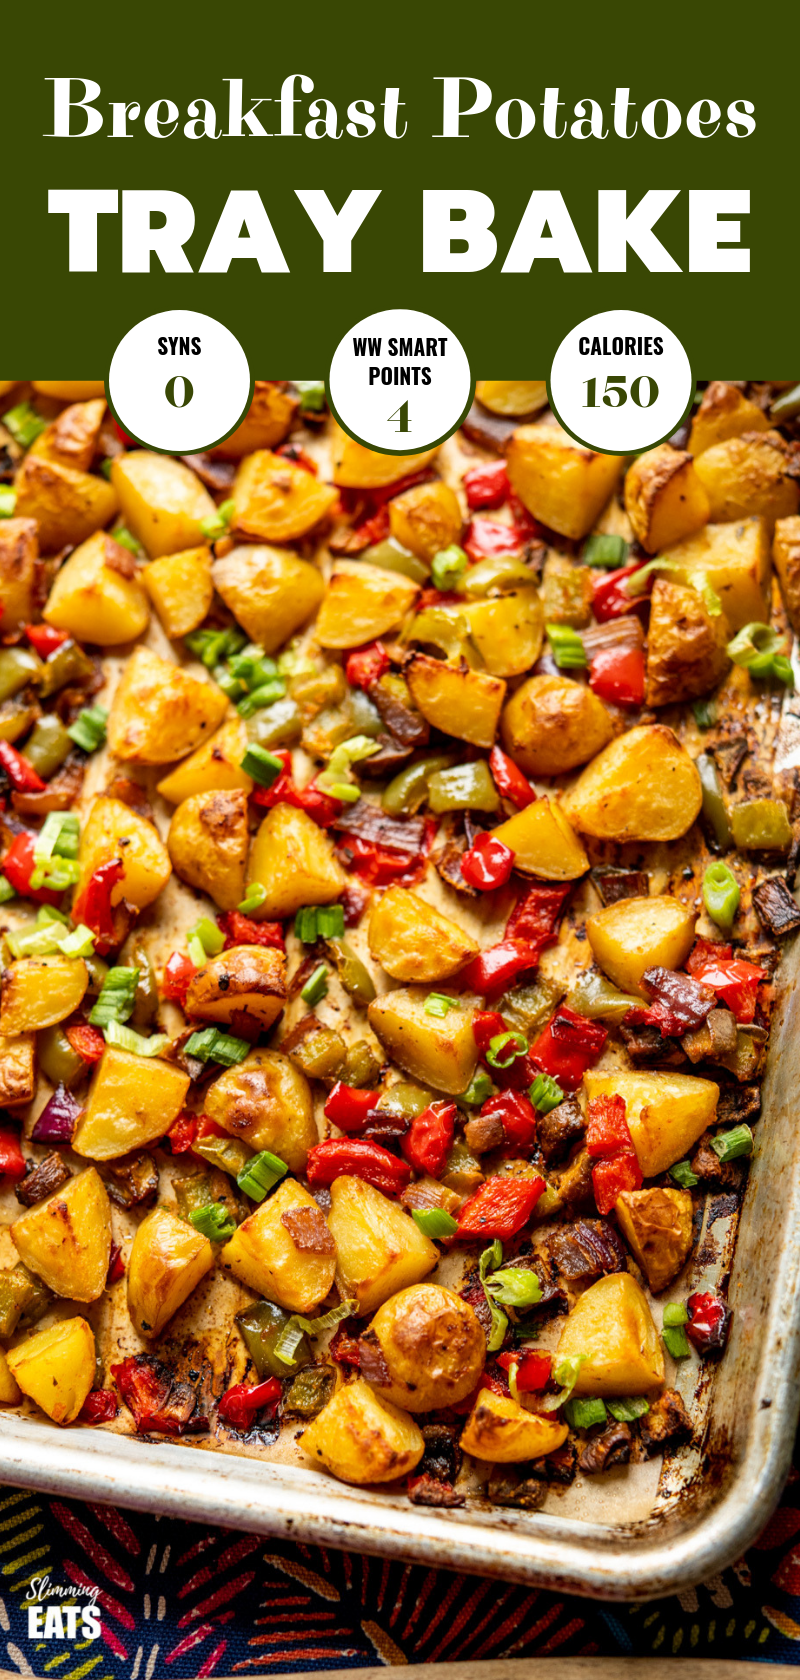 syn free breakfast potatoes on tray pin